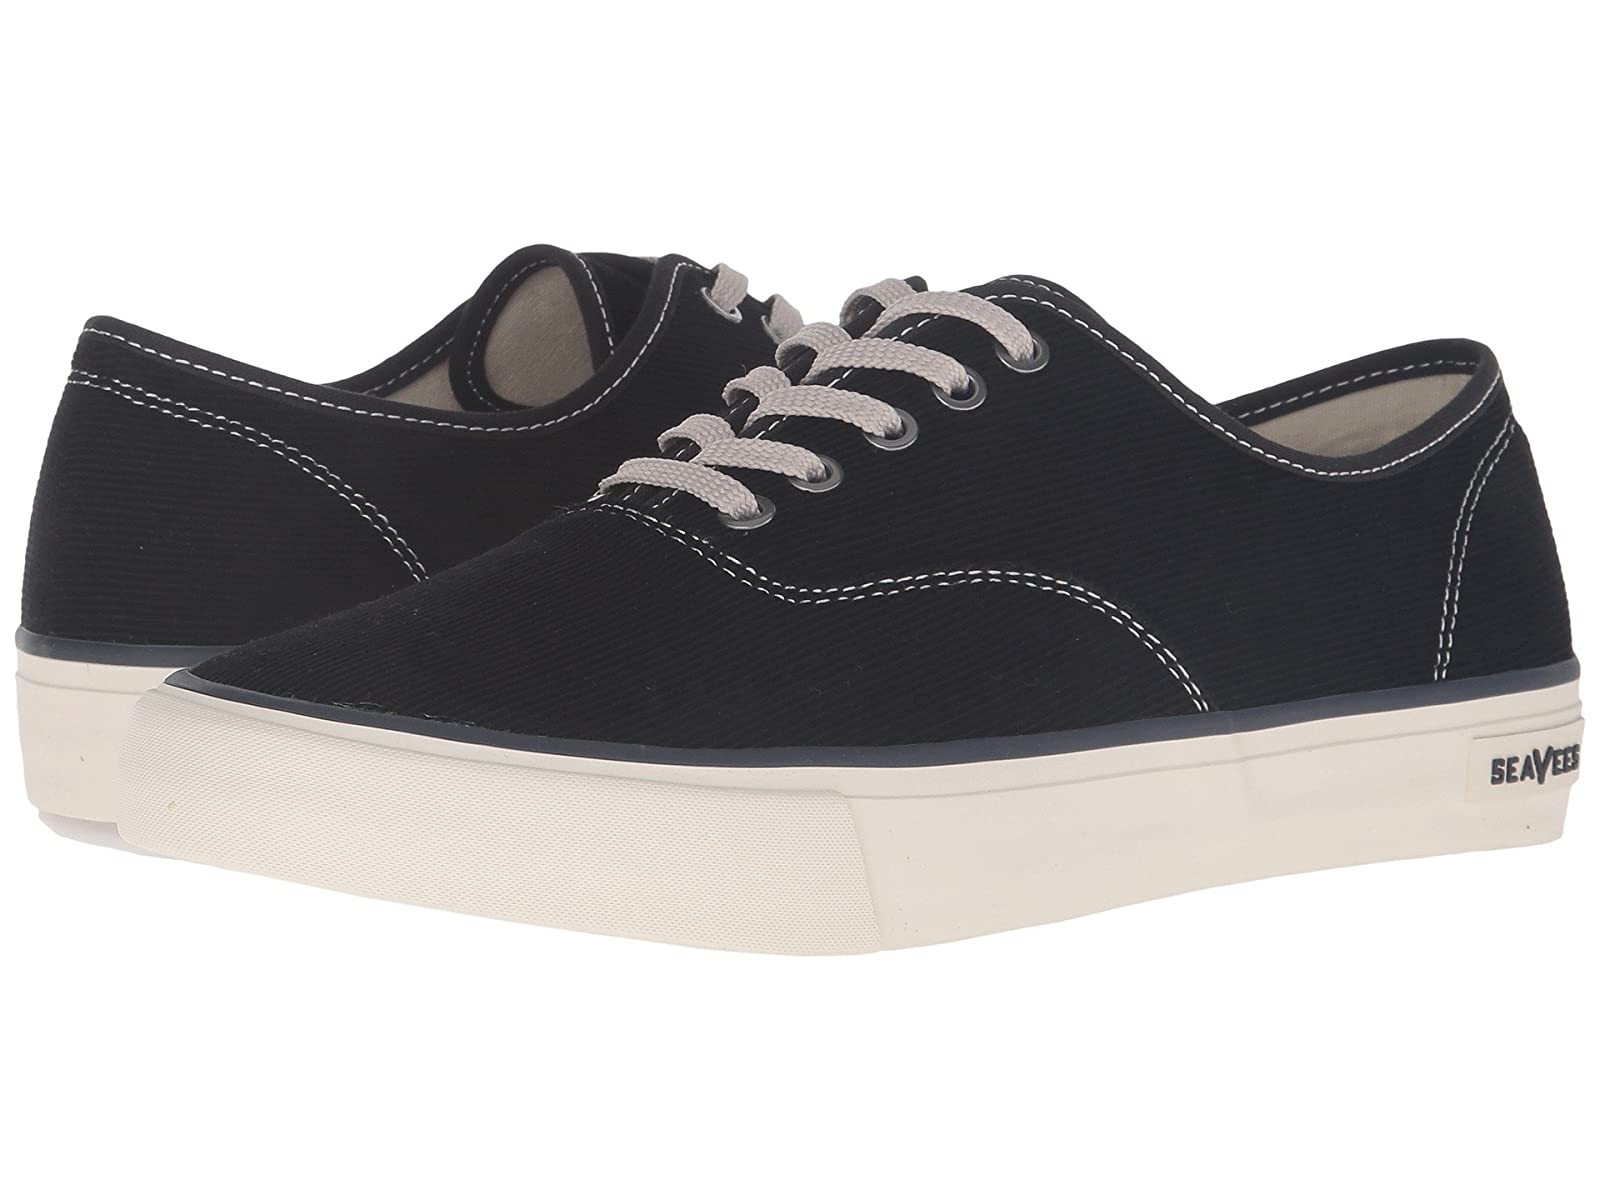 SeaVees 06/64 Legend VarsityCheap and distinctive eye-catching shoes